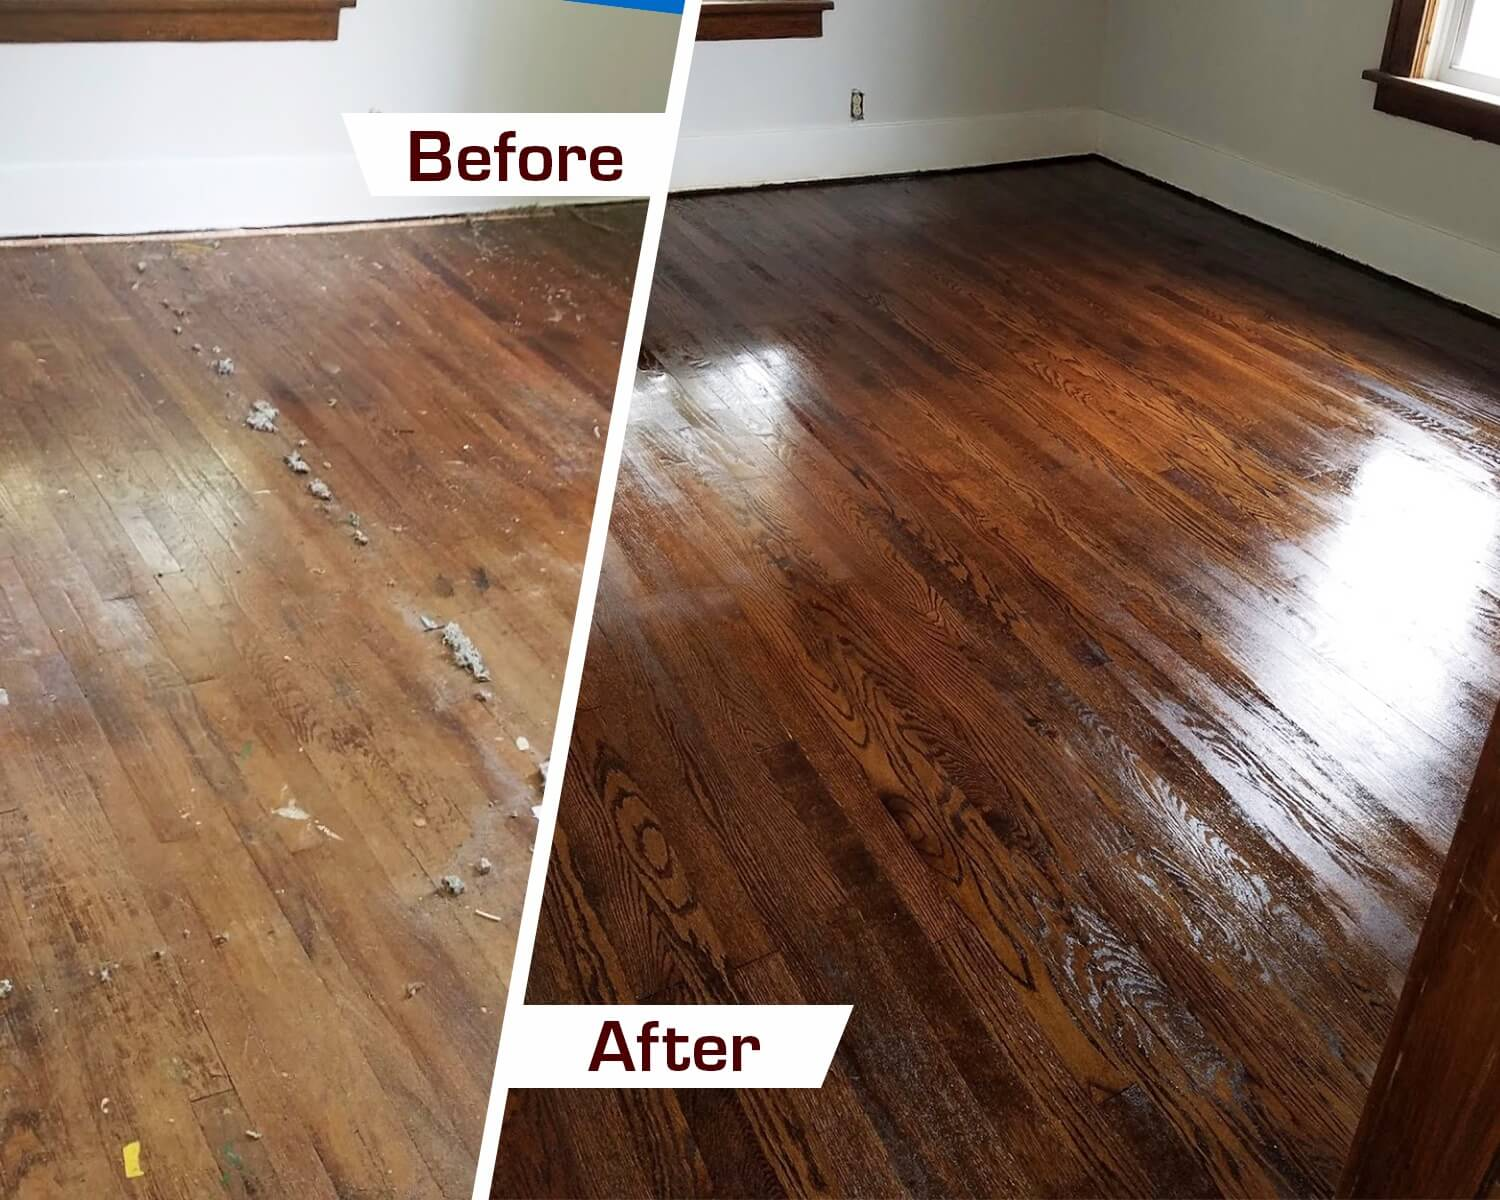 before and after a wood floor refinishing project